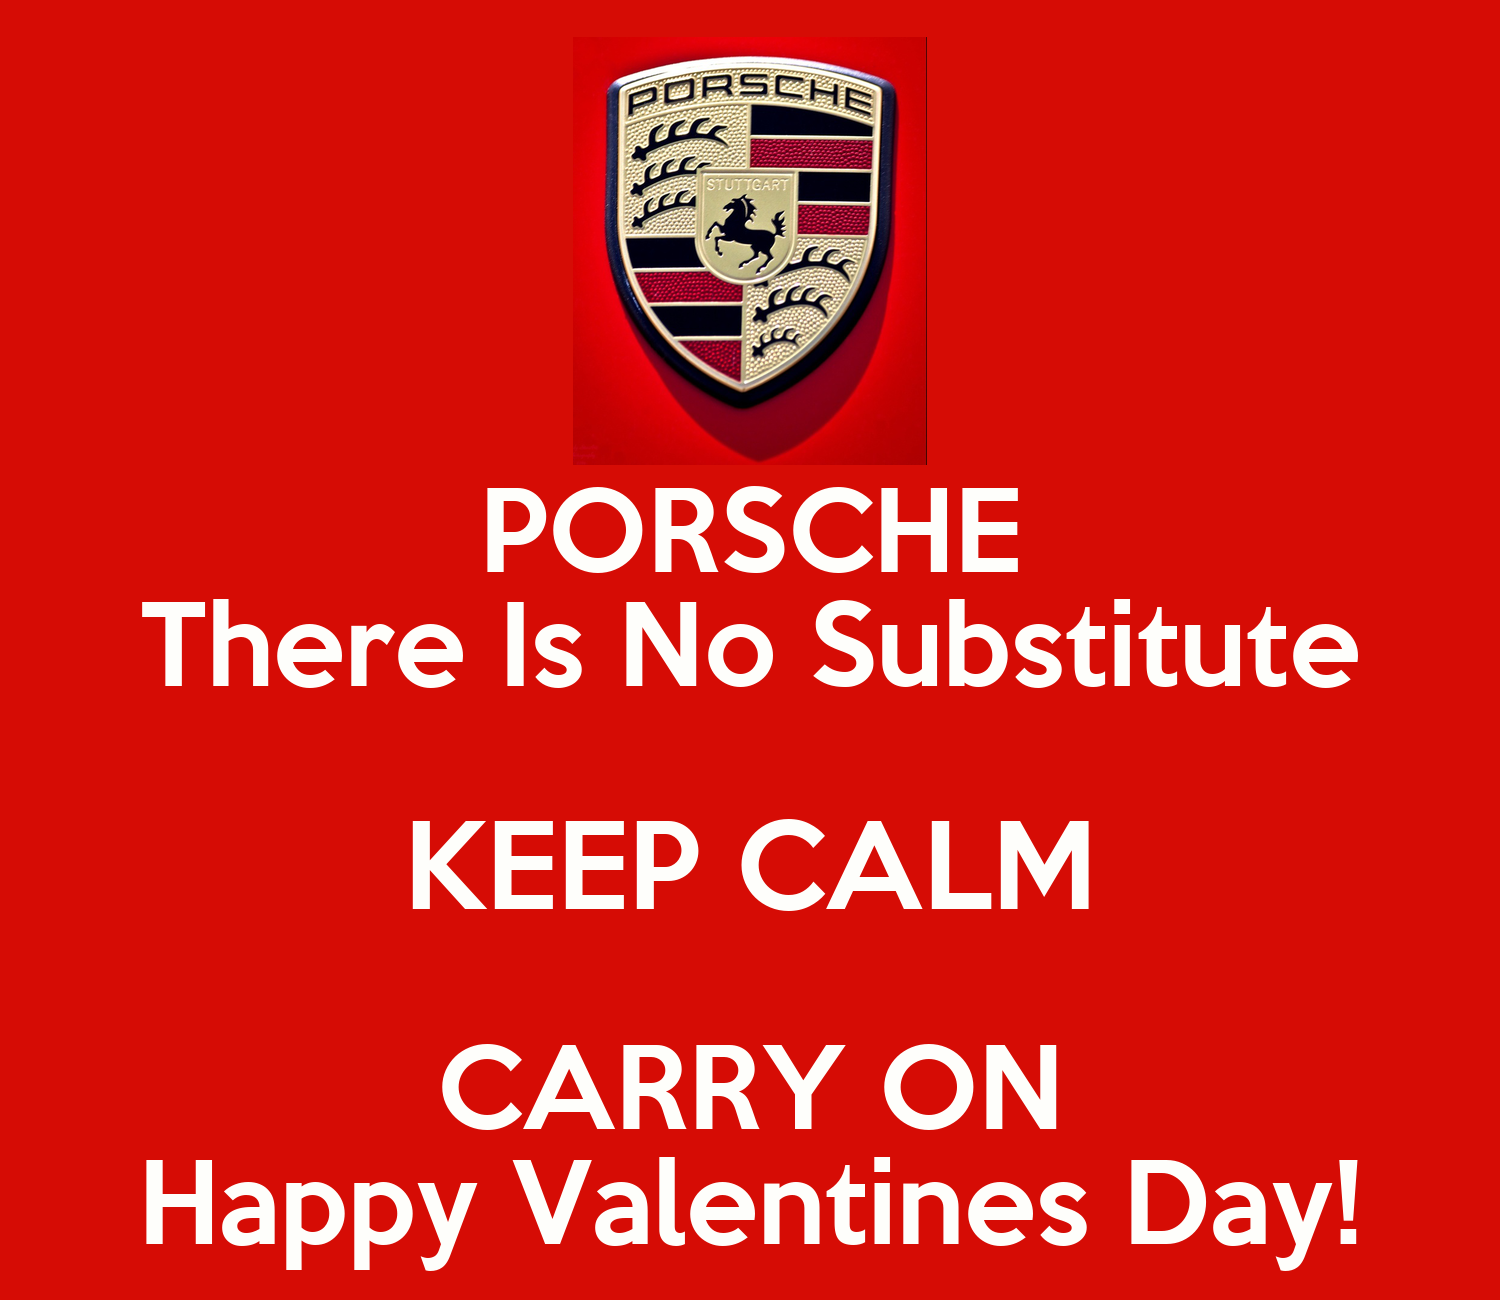 Porsche There Is No Substitute Keep Calm Carry On Happy Valentines Day Keep Calm And Carry On